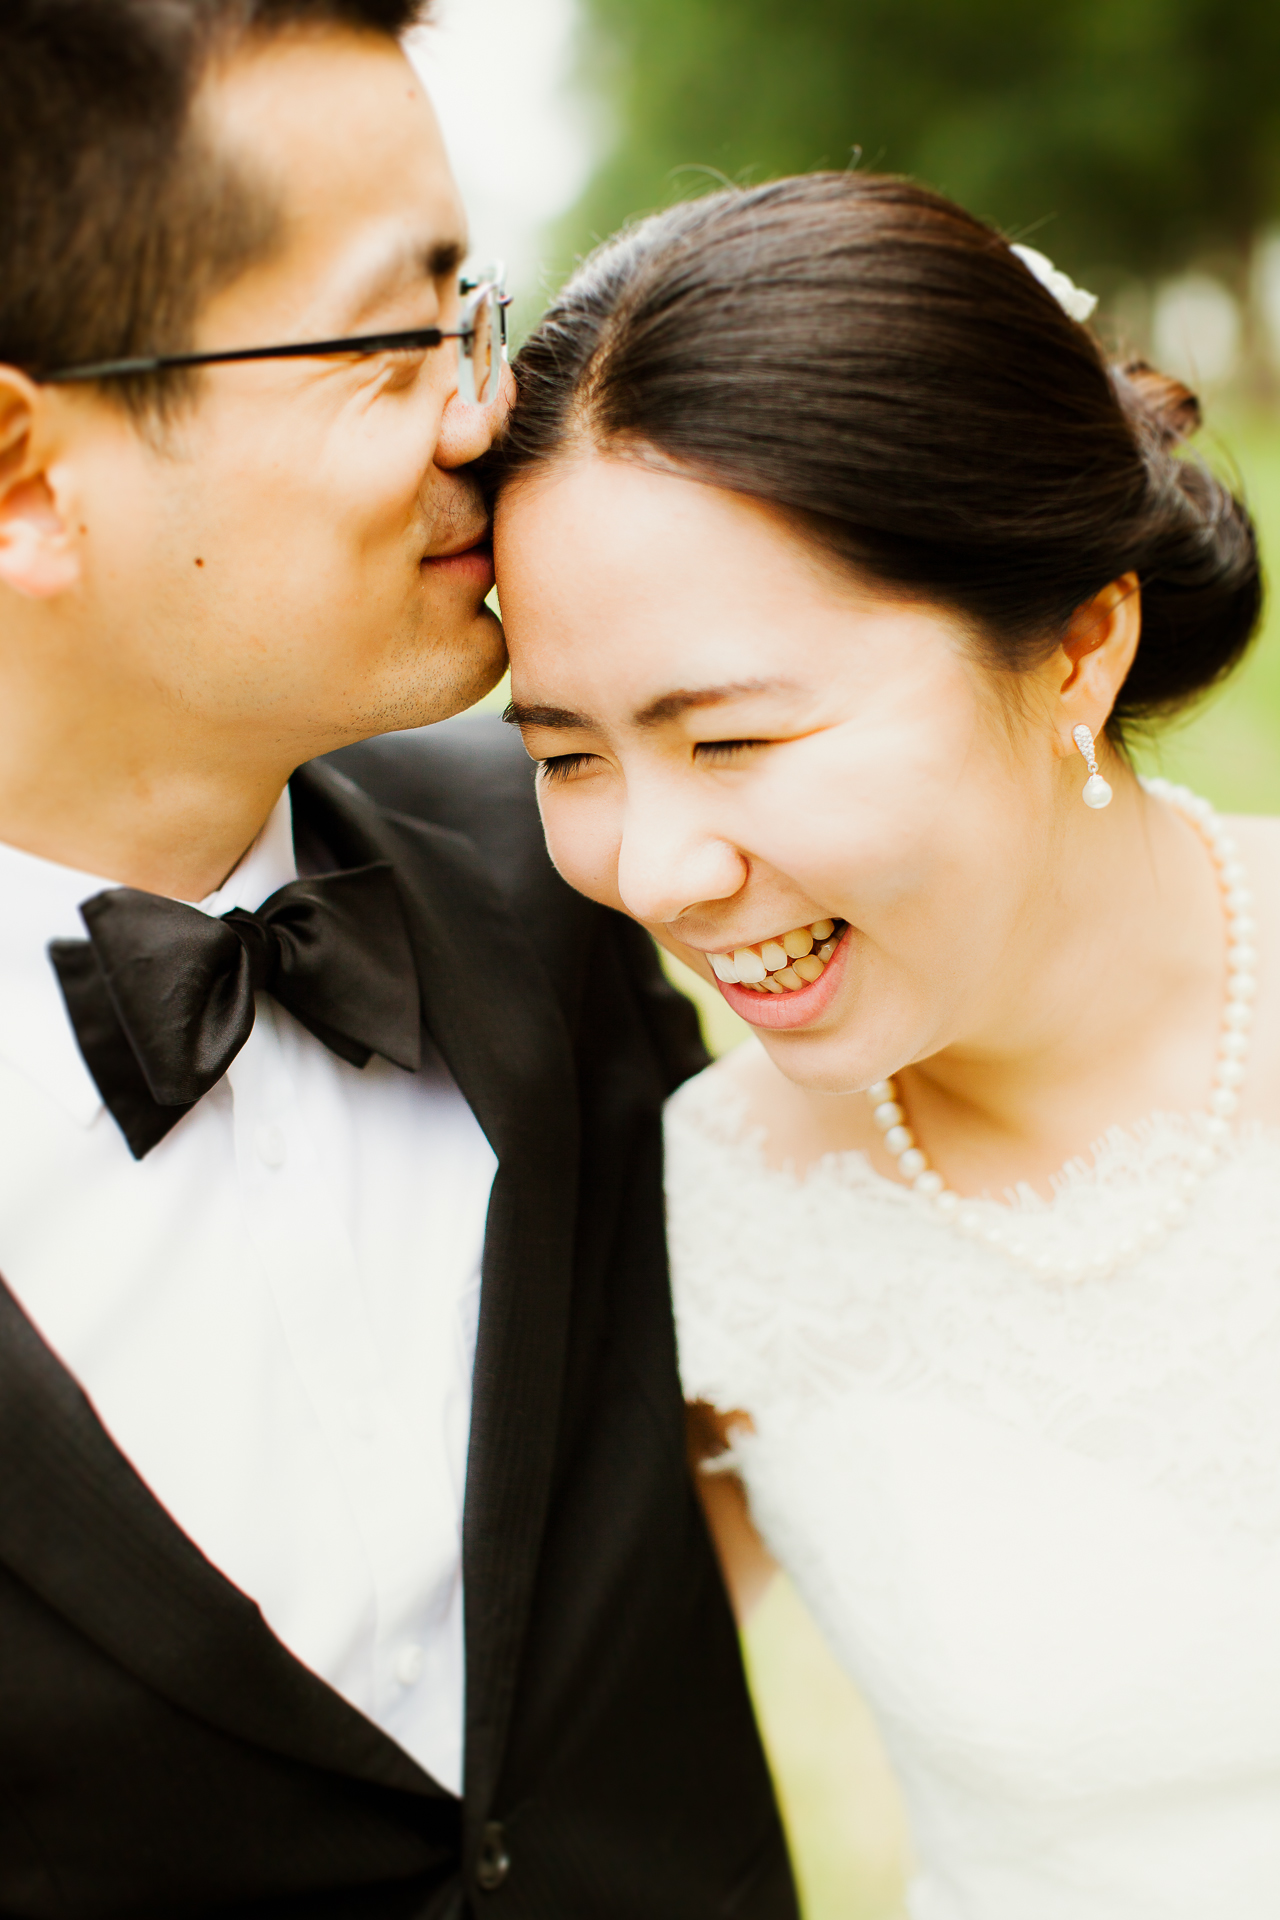 luona_lihuan_dc_wedding-3.jpg